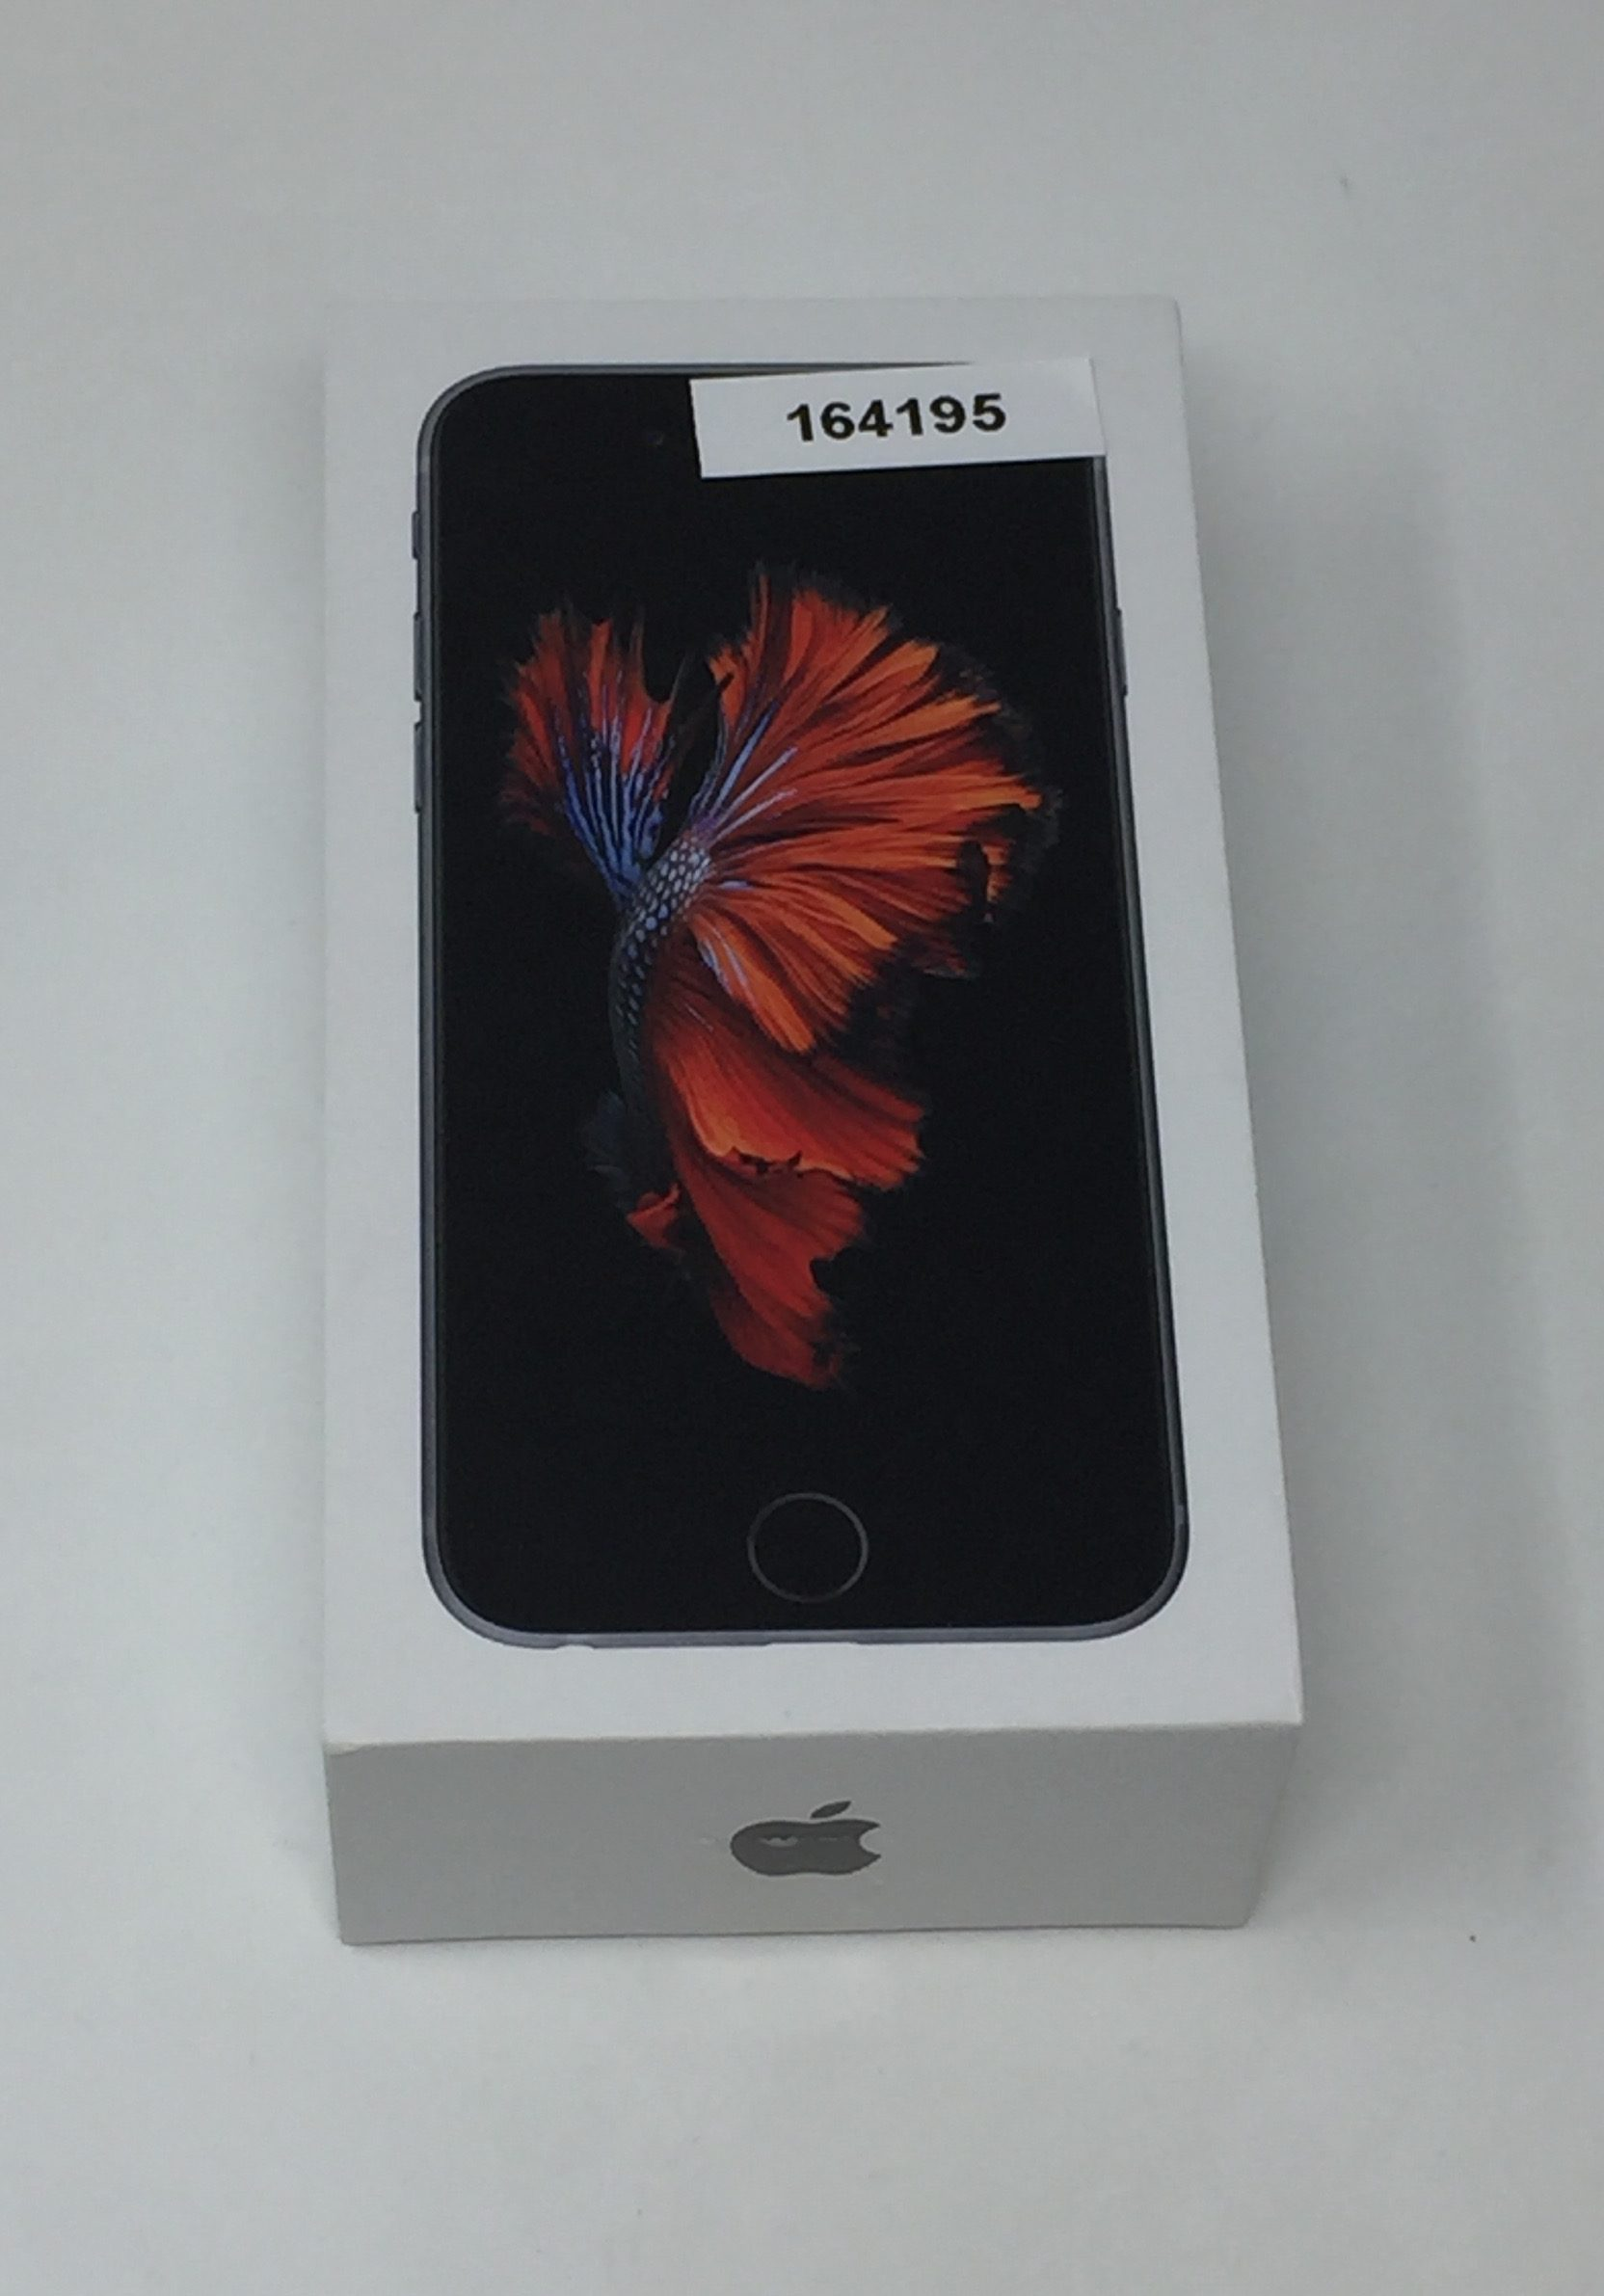 iPhone 6S 16GB, 16 GB, SPACE GRAY, bild 8